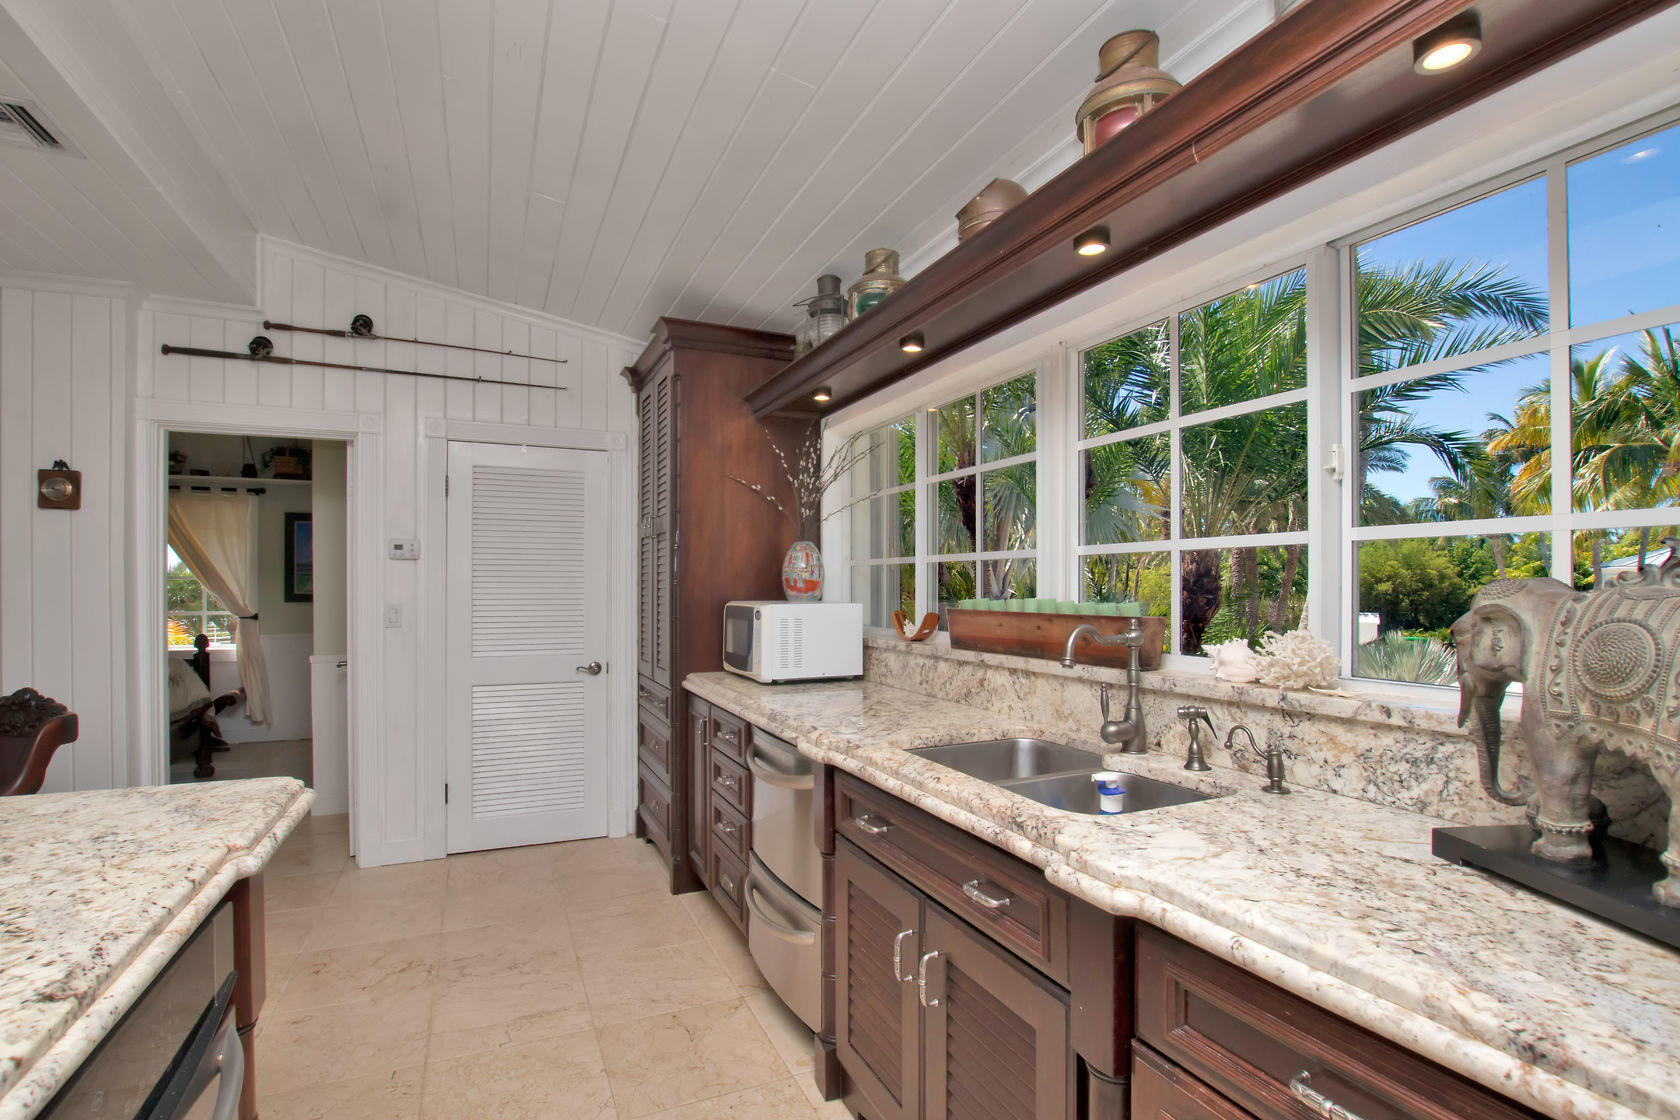 80909 Old Highway Property Photo 17